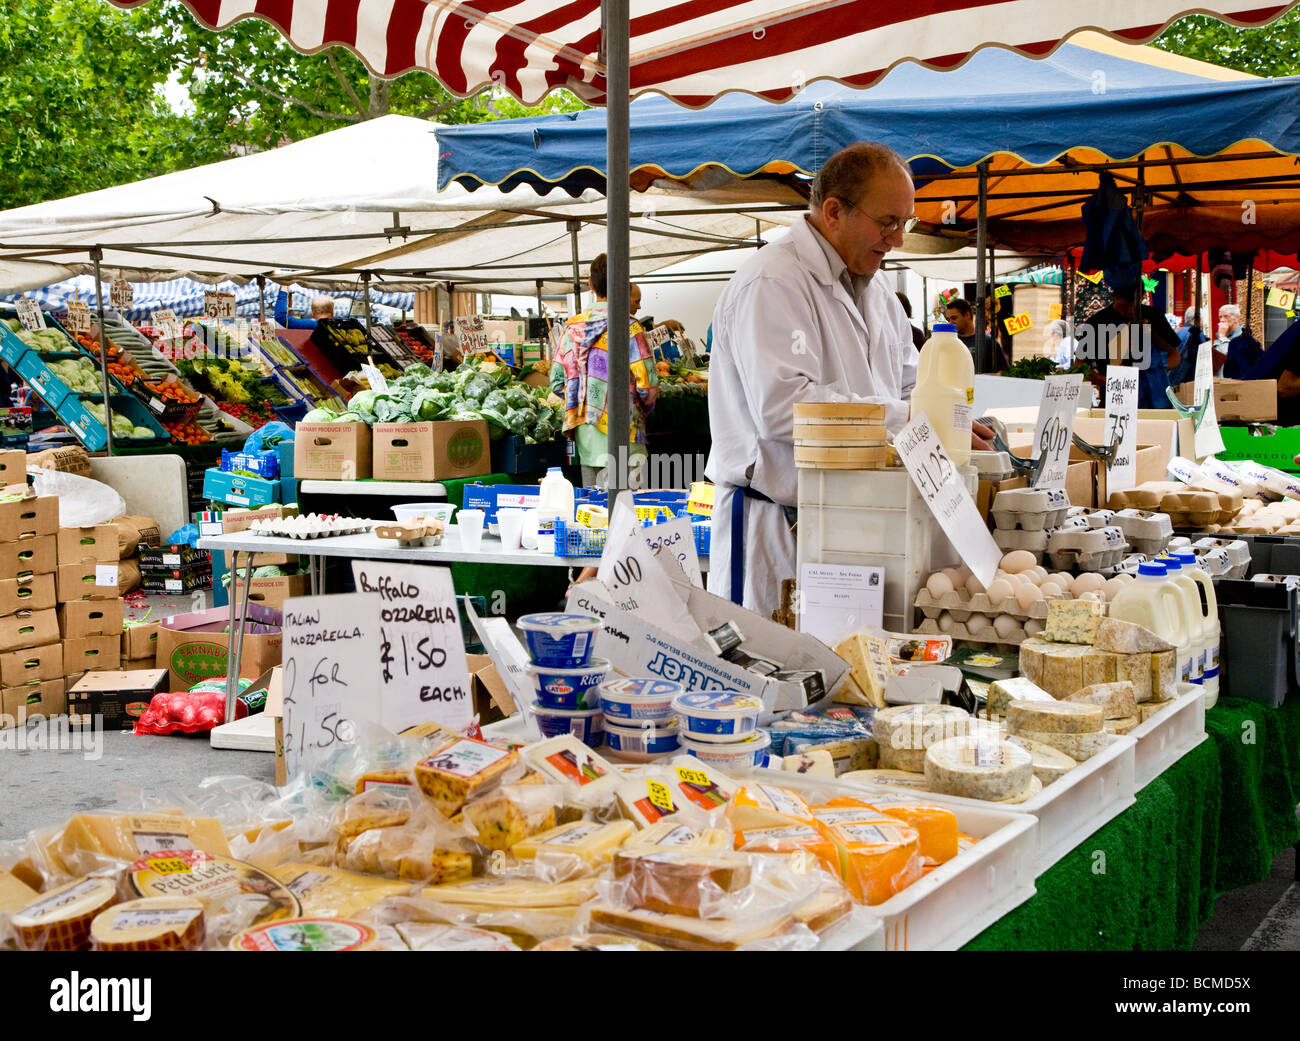 A dairy stall at the Thursday famer s market in the typical English market town of Devizes Wiltshire England UK - Stock Image